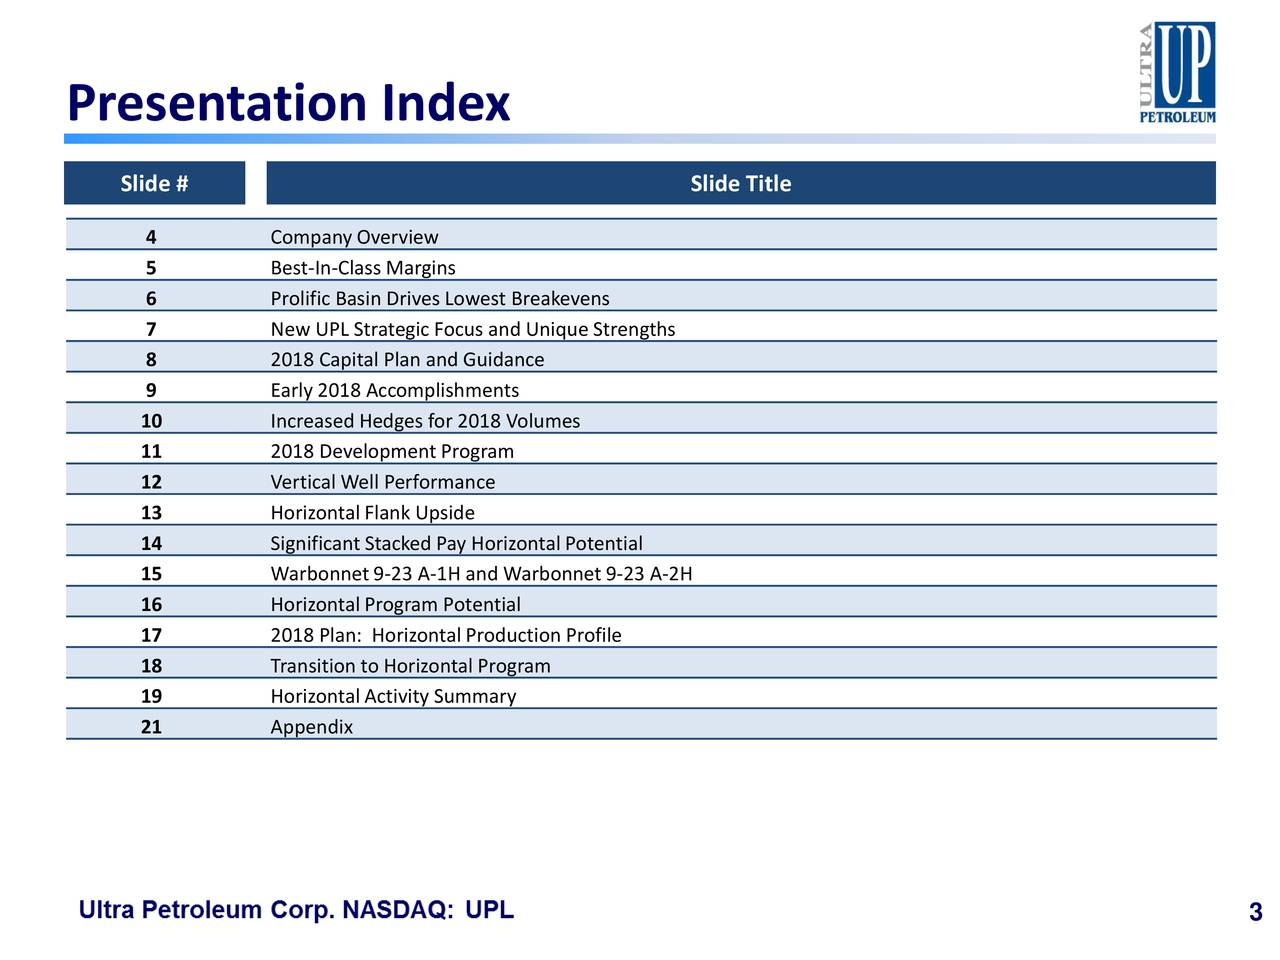 Slide # Slide Title 4 Company Overview 5 Best-In-Class Margins 6 Prolific Basin Drives Lowest Breakevens 7 New UPL Strategic Focus and Unique Strengths 8 2018 Capital Plan and Guidance 9 Early 2018 Accomplishments 10 Increased Hedges for 2018 Volumes 11 2018 Development Program 12 Vertical Well Performance 13 Horizontal Flank Upside 14 Significant Stacked Pay Horizontal Potential 15 Warbonnet9-23 A-1H and Warbonnet 9-23 A-2H 16 HorizontalProgram Potential 17 2018 Plan: Horizontal Production Profile 18 Transition to Horizontal Program 19 Horizontal Activity Summary 21 Appendix 3